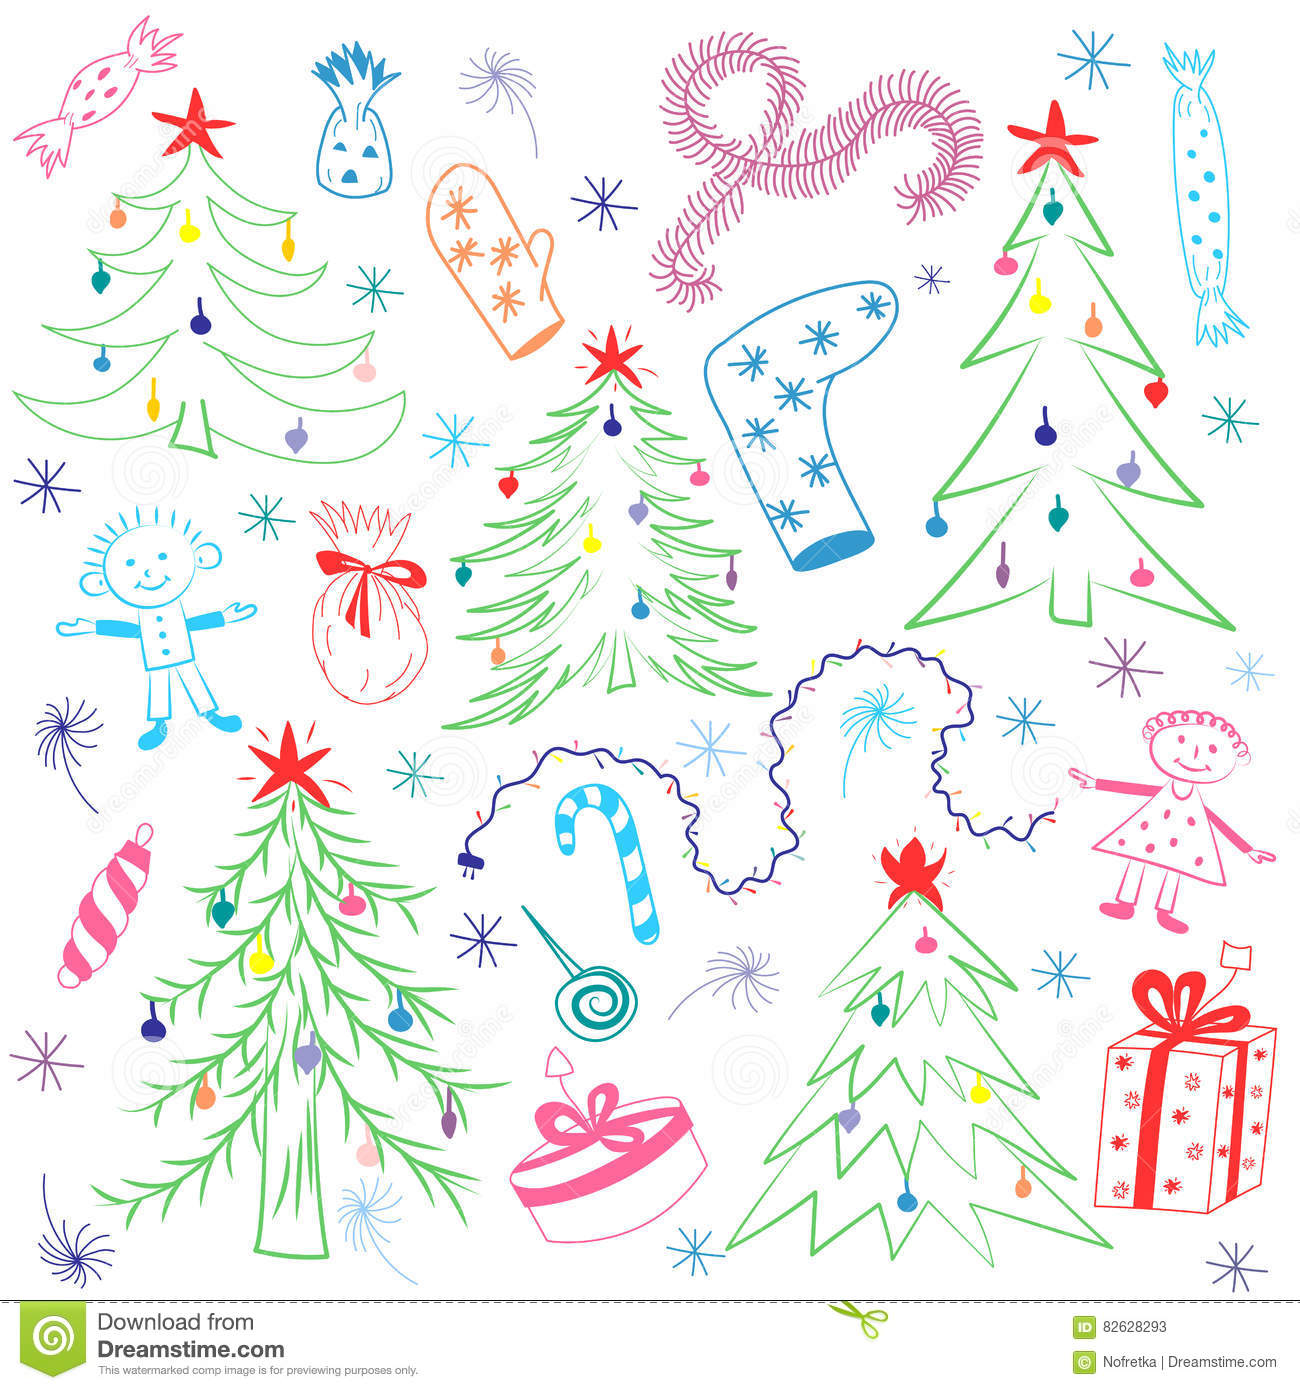 Colorful Children Drawings of Fir trees. Funny Doodle Winter Holiday`s Symbols and Kids